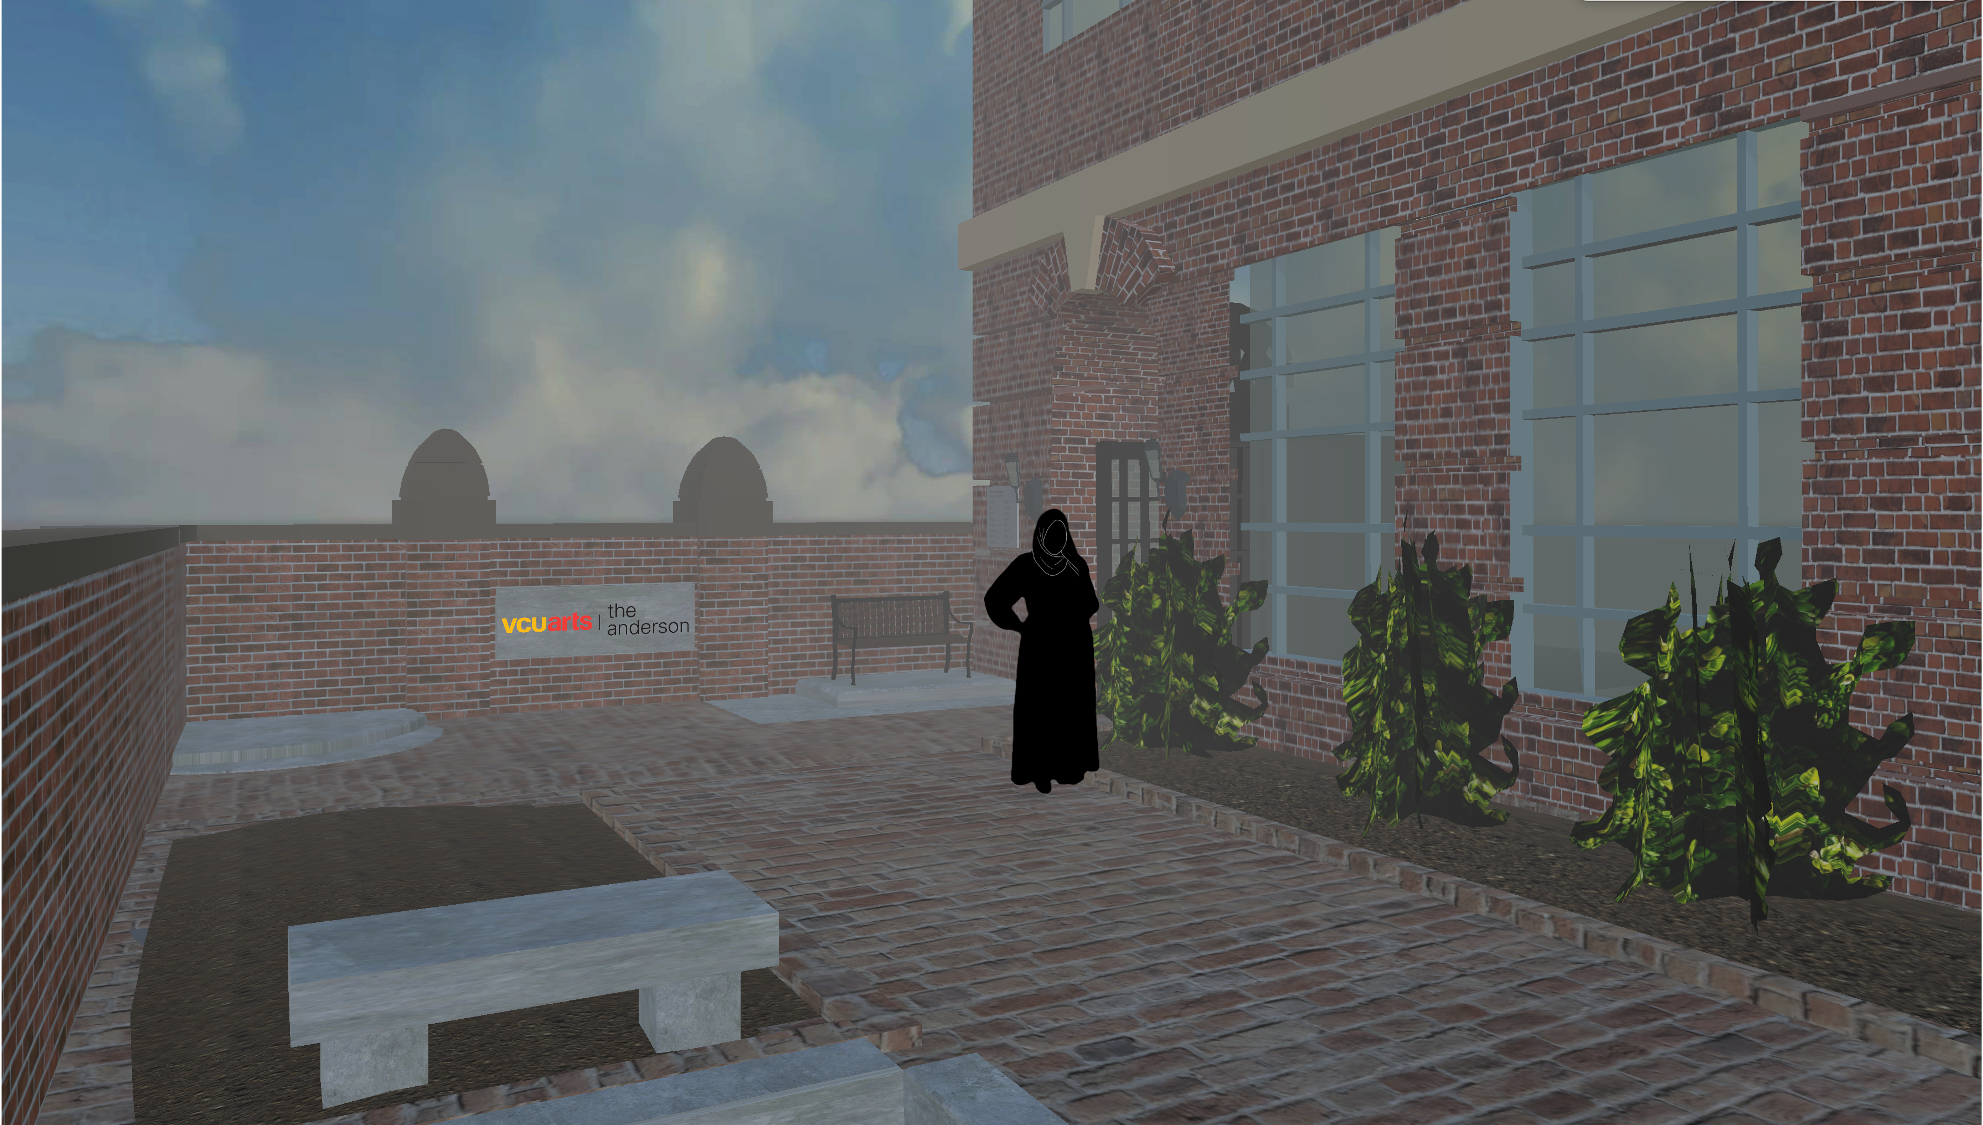 A person shown as a black silhouette standing outside the brick facade and courtyard of the Anderson.